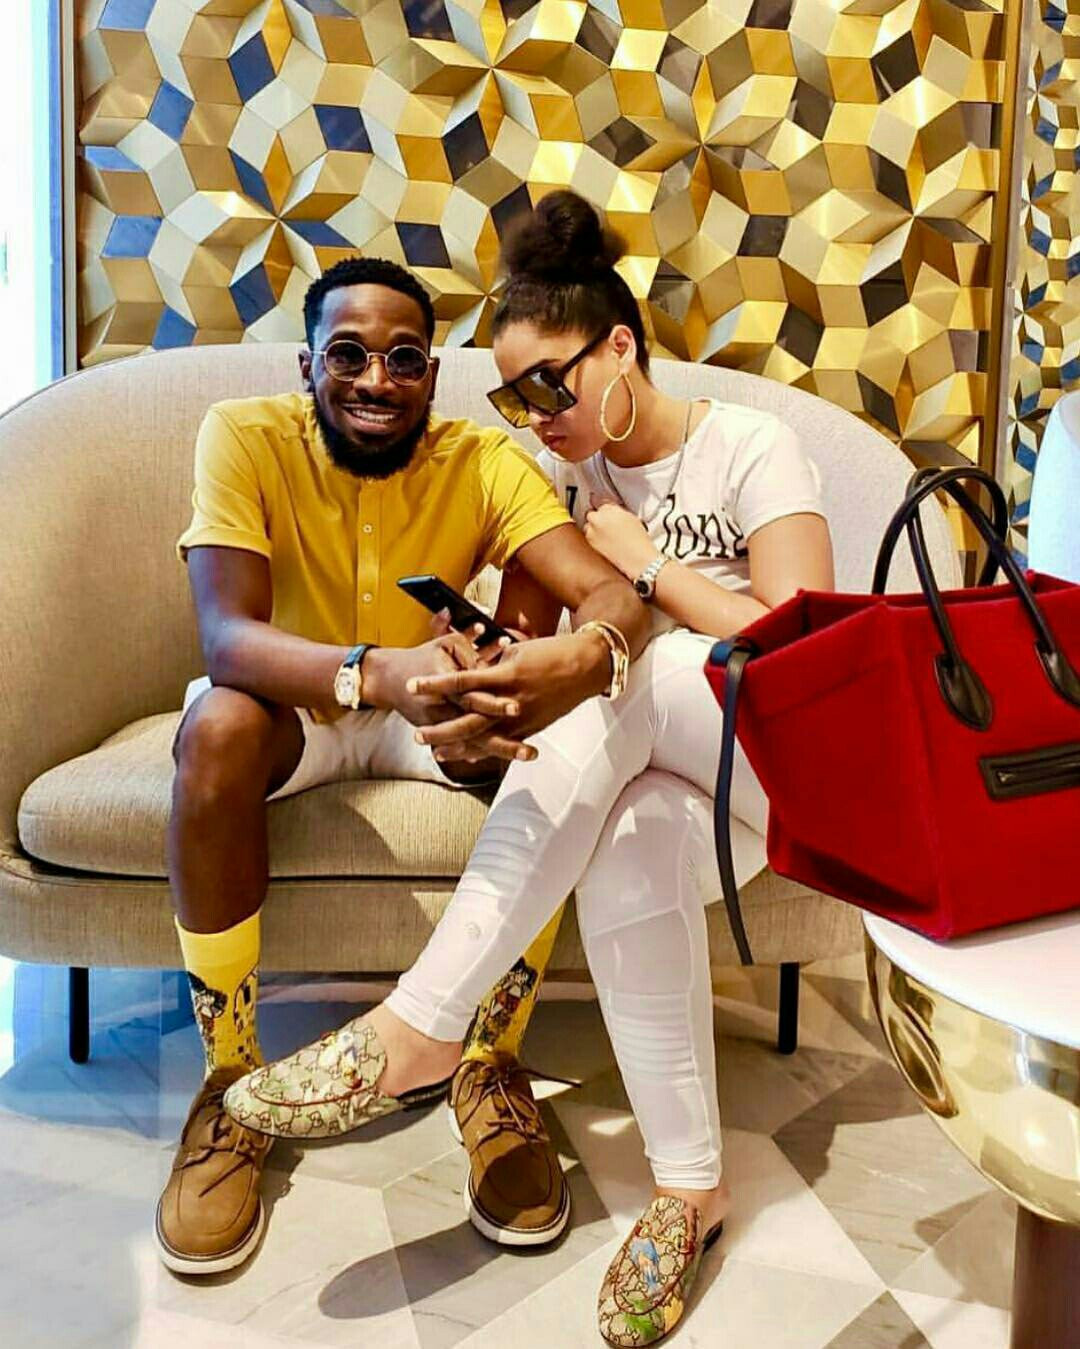 D'banj announces he's going to be a father in few months lindaikejisblog